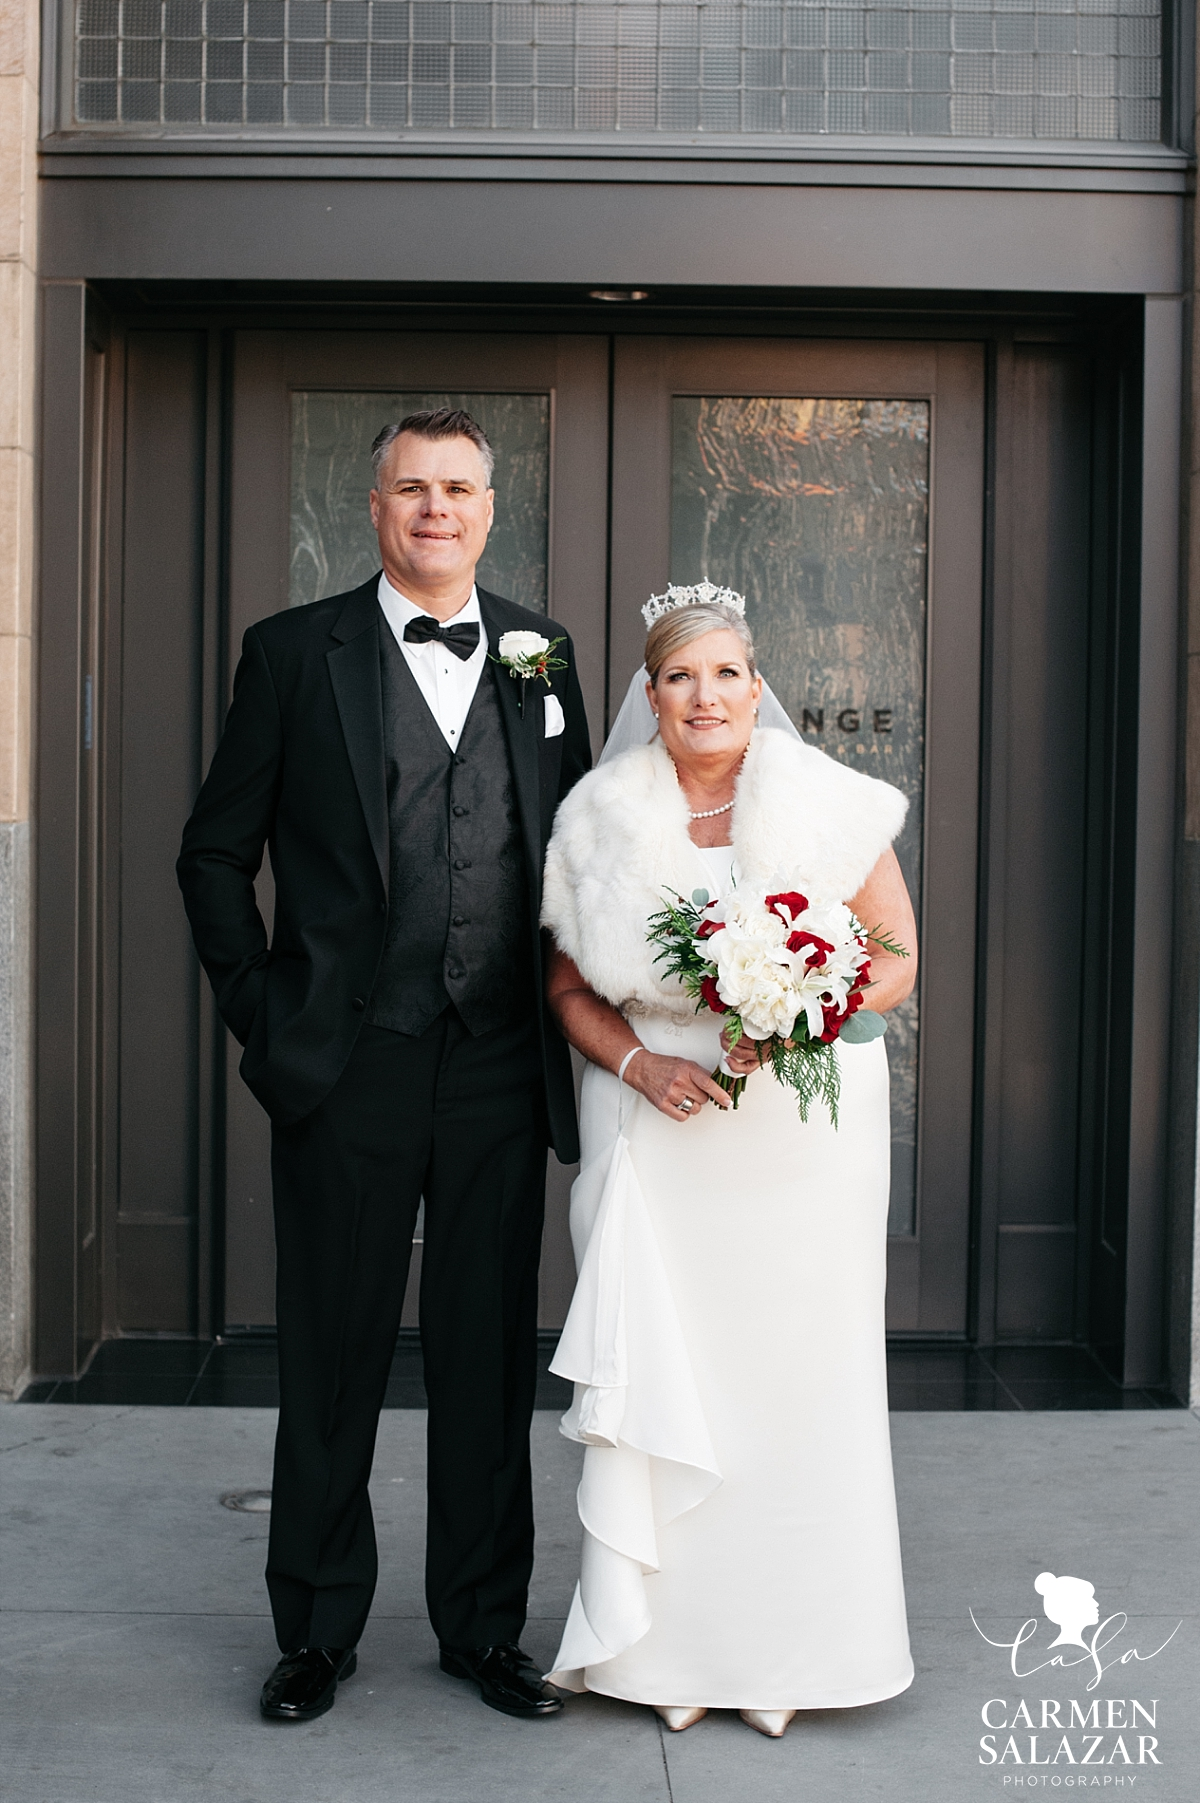 Bride and groom portraits in front of The Grange - Carmen Salazar